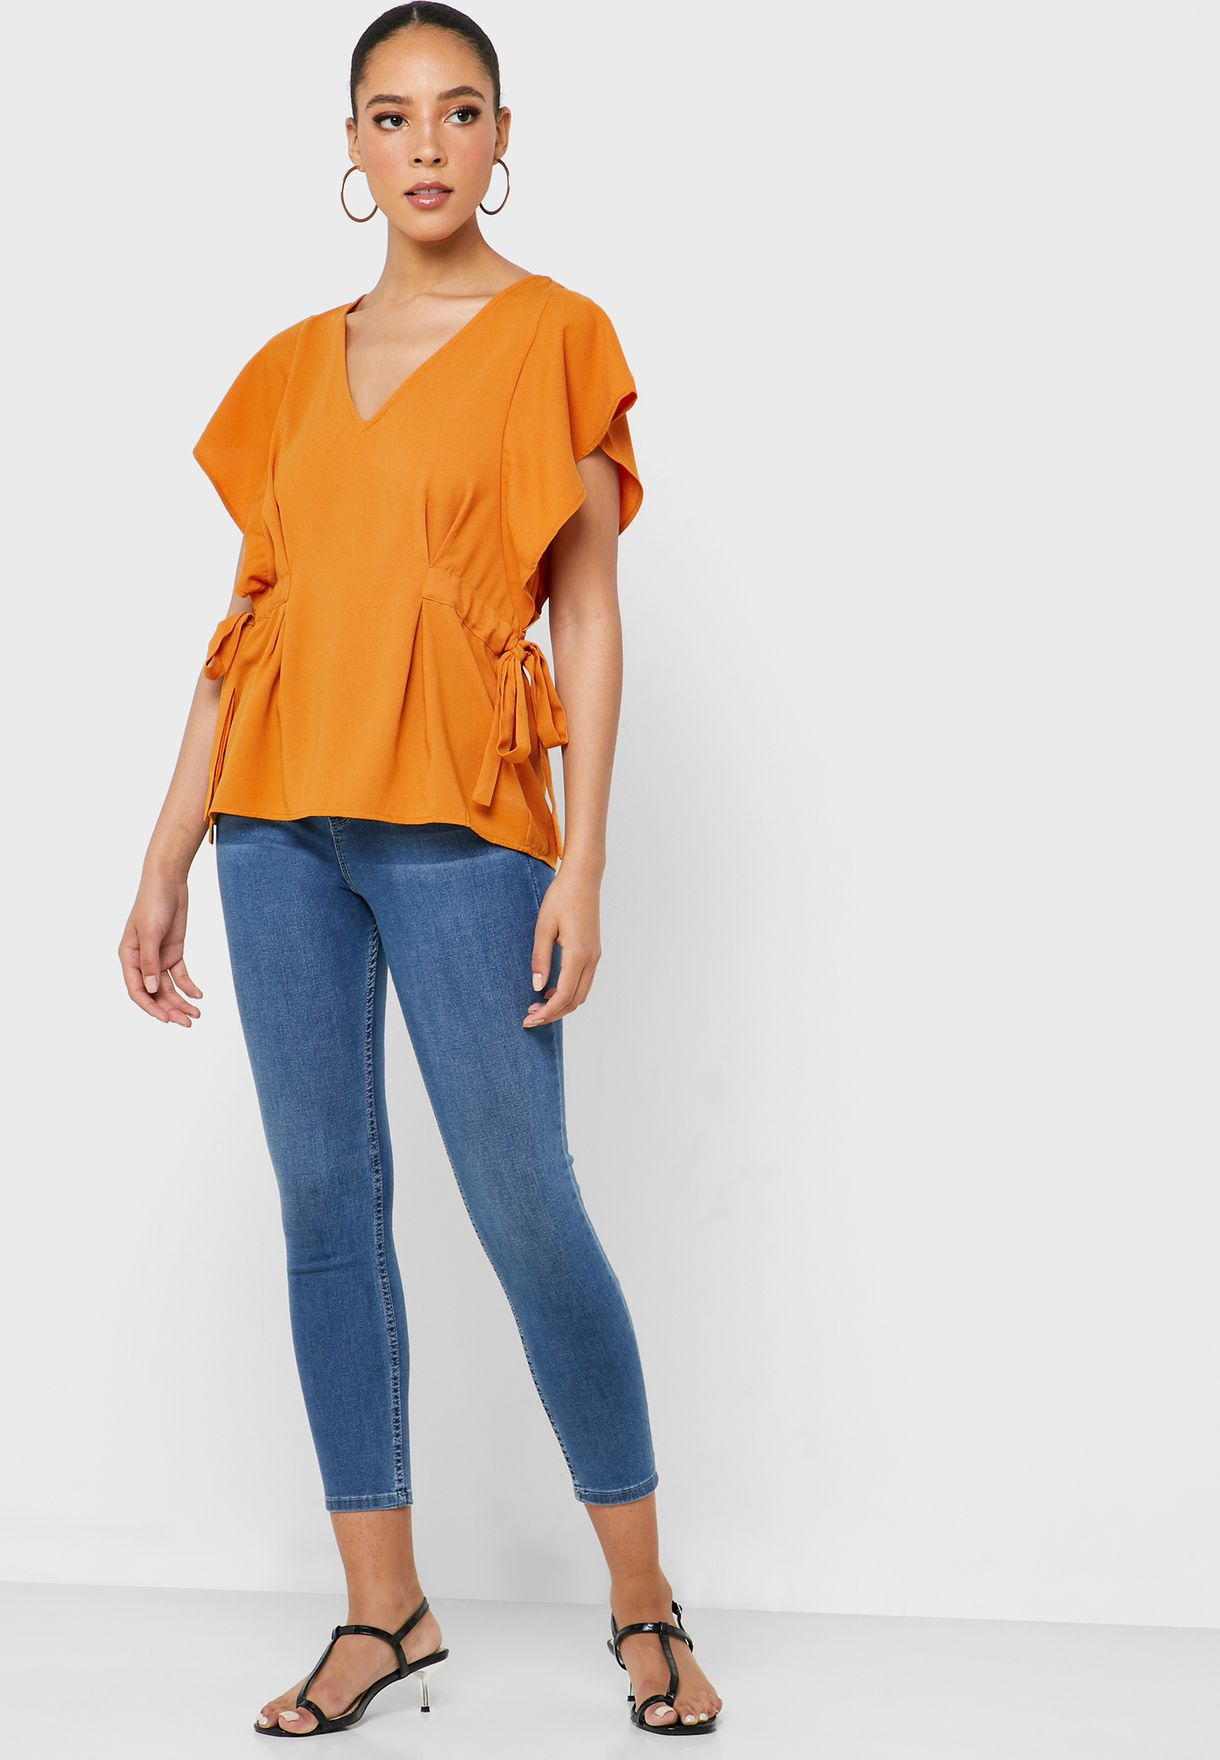 V-Neck Ruffle Sleeve Top